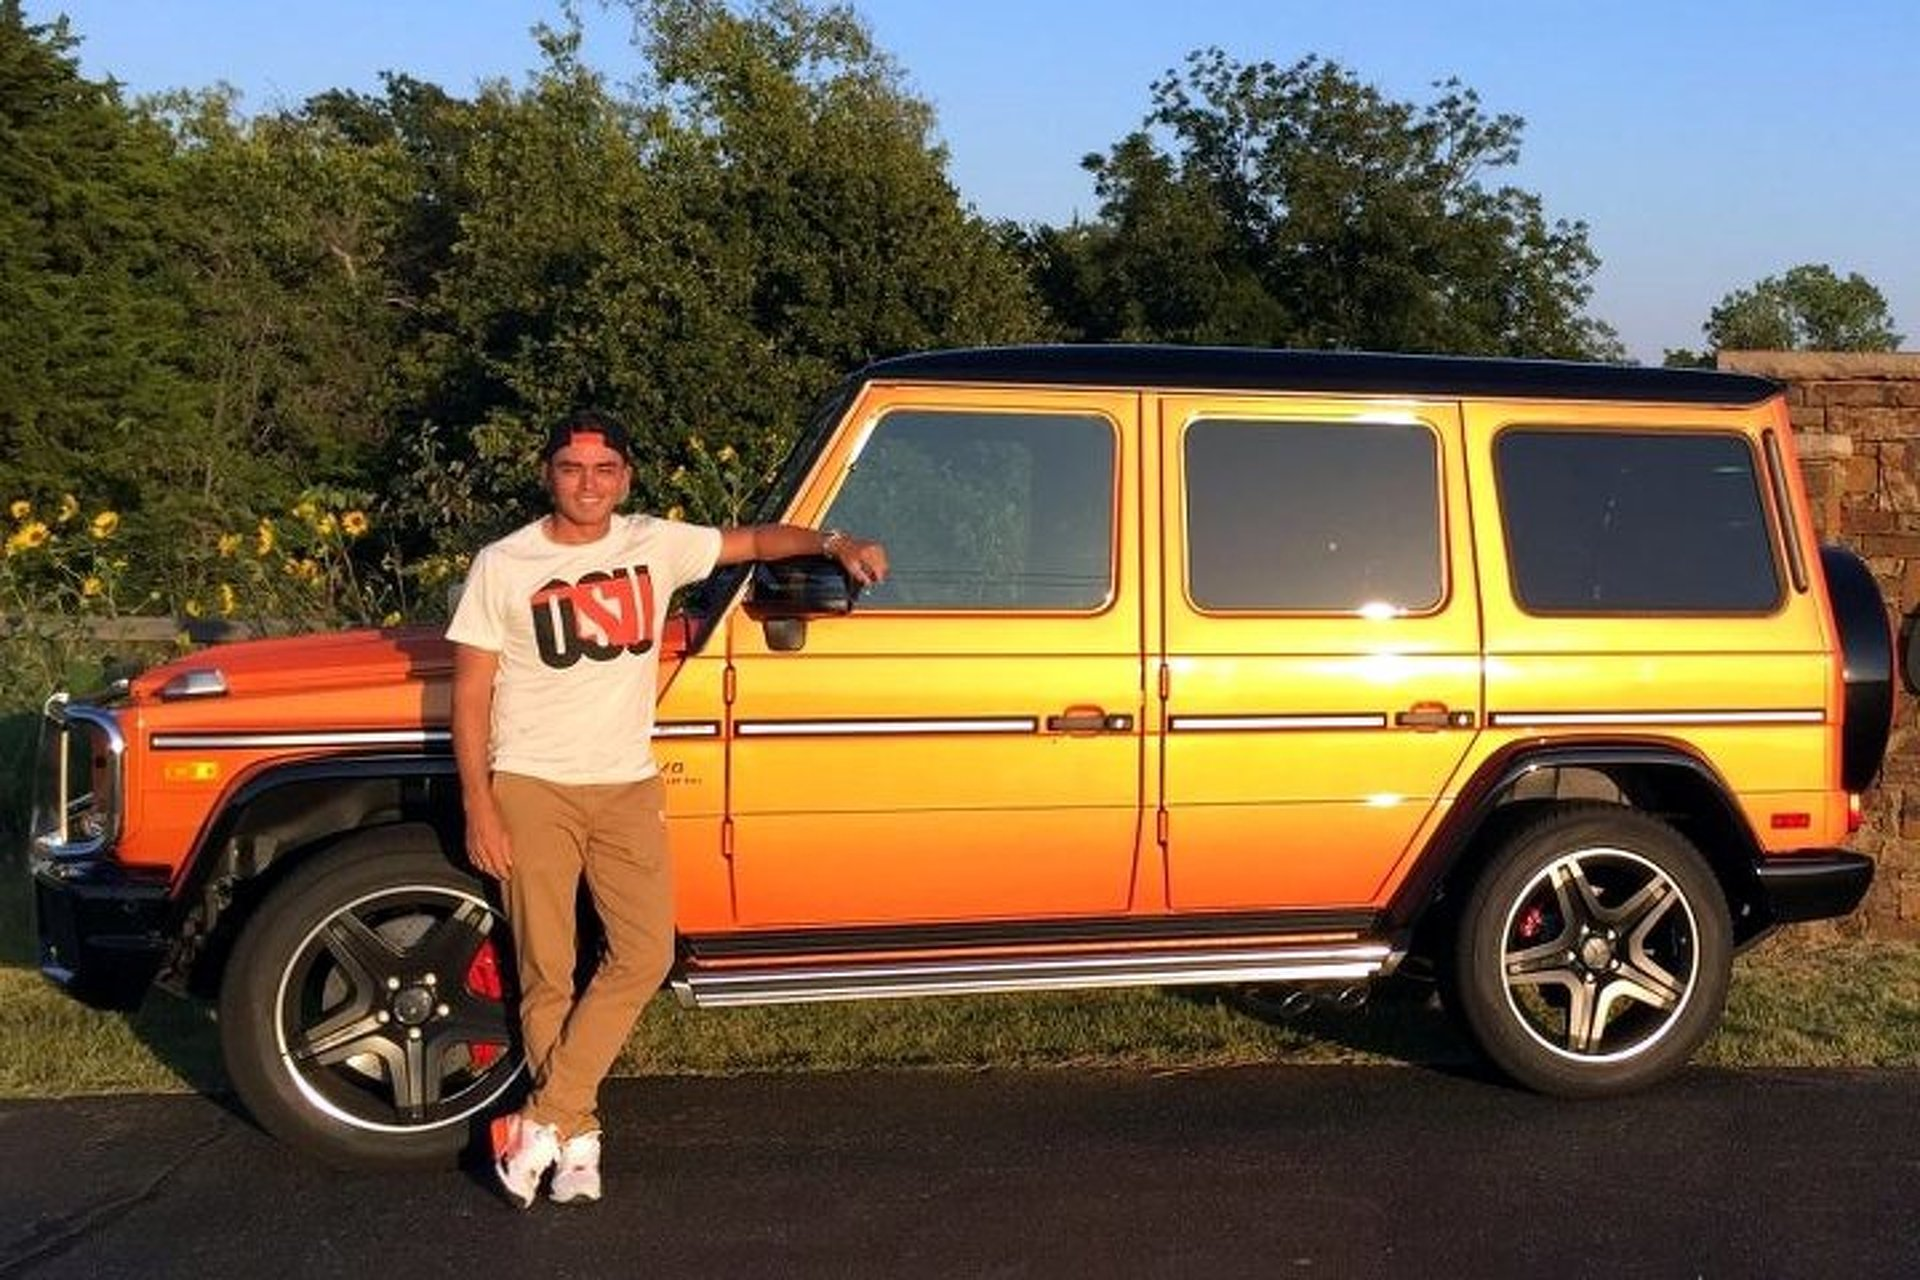 pro golfer rickie fowler flaunts his orange gclass at